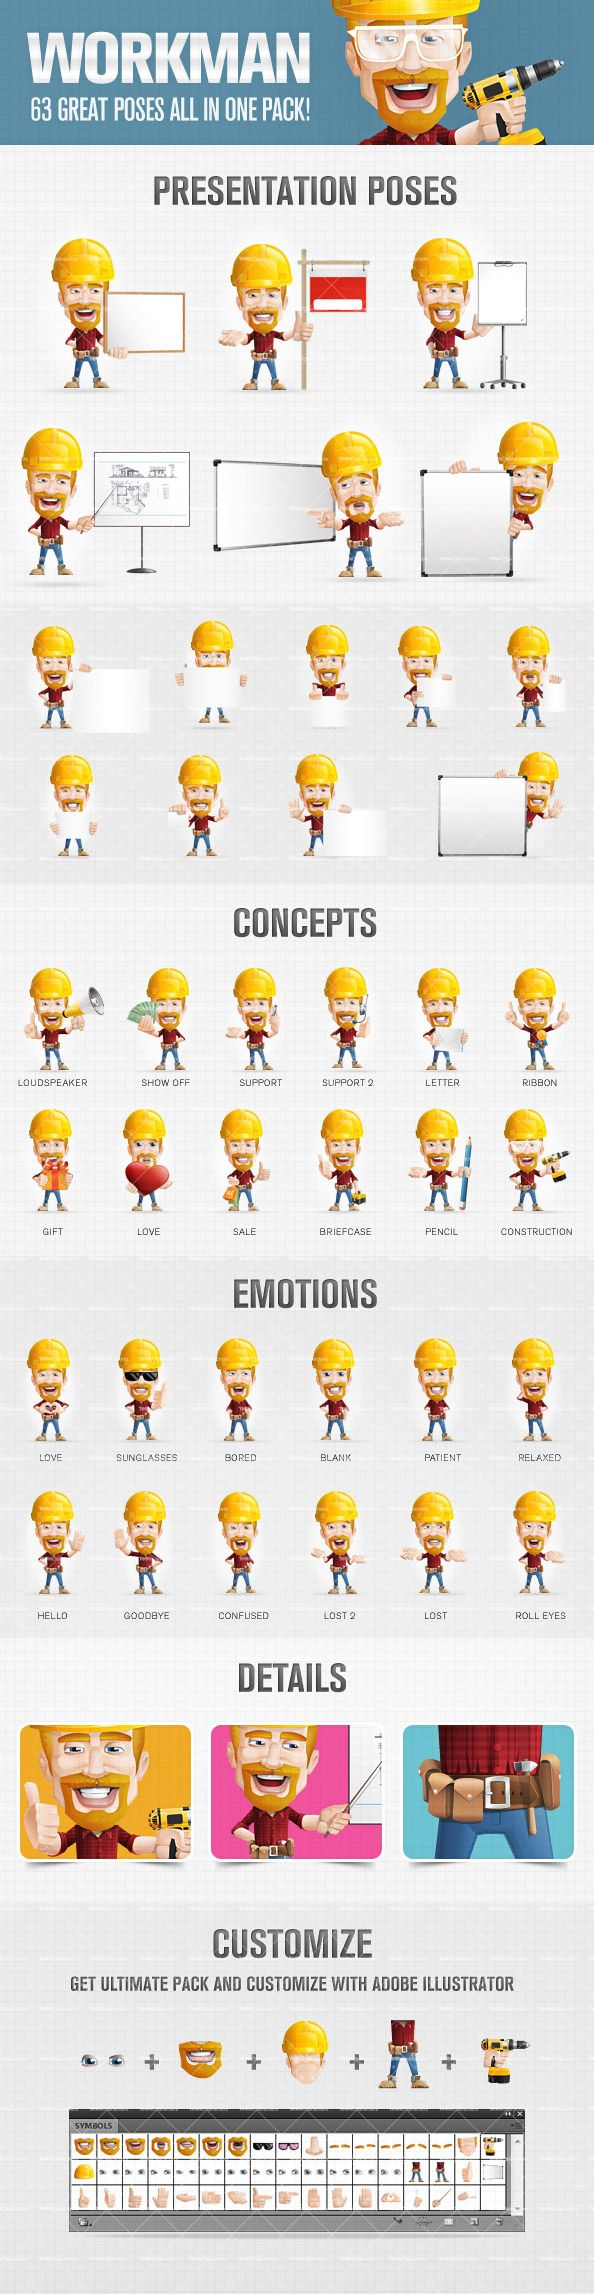 Worker cartoon character designed in super clean, eye-catching 3D look